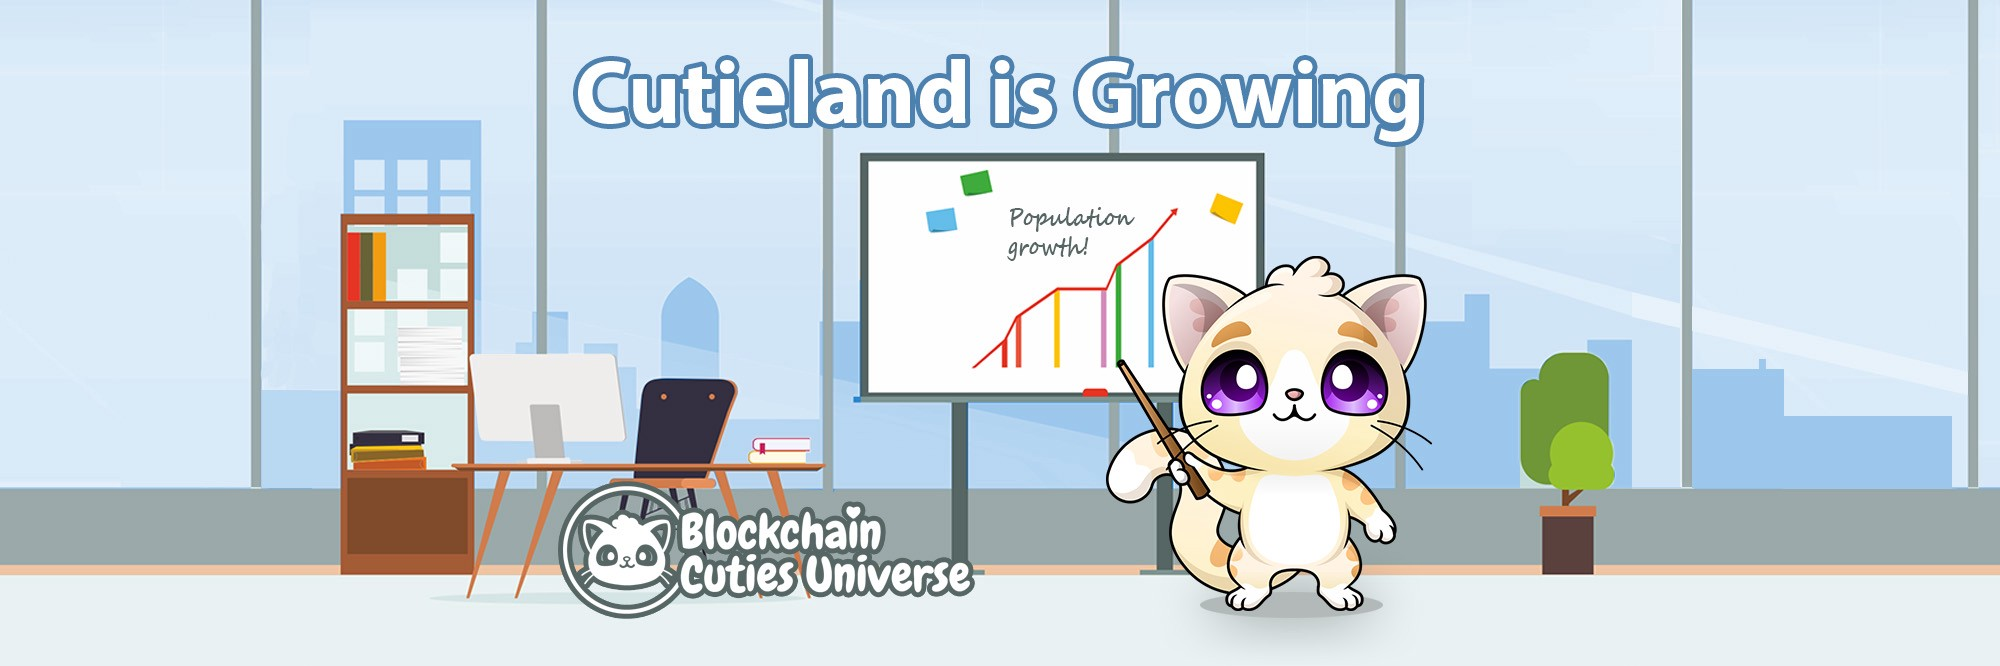 Cutieland Approaching New Milestone